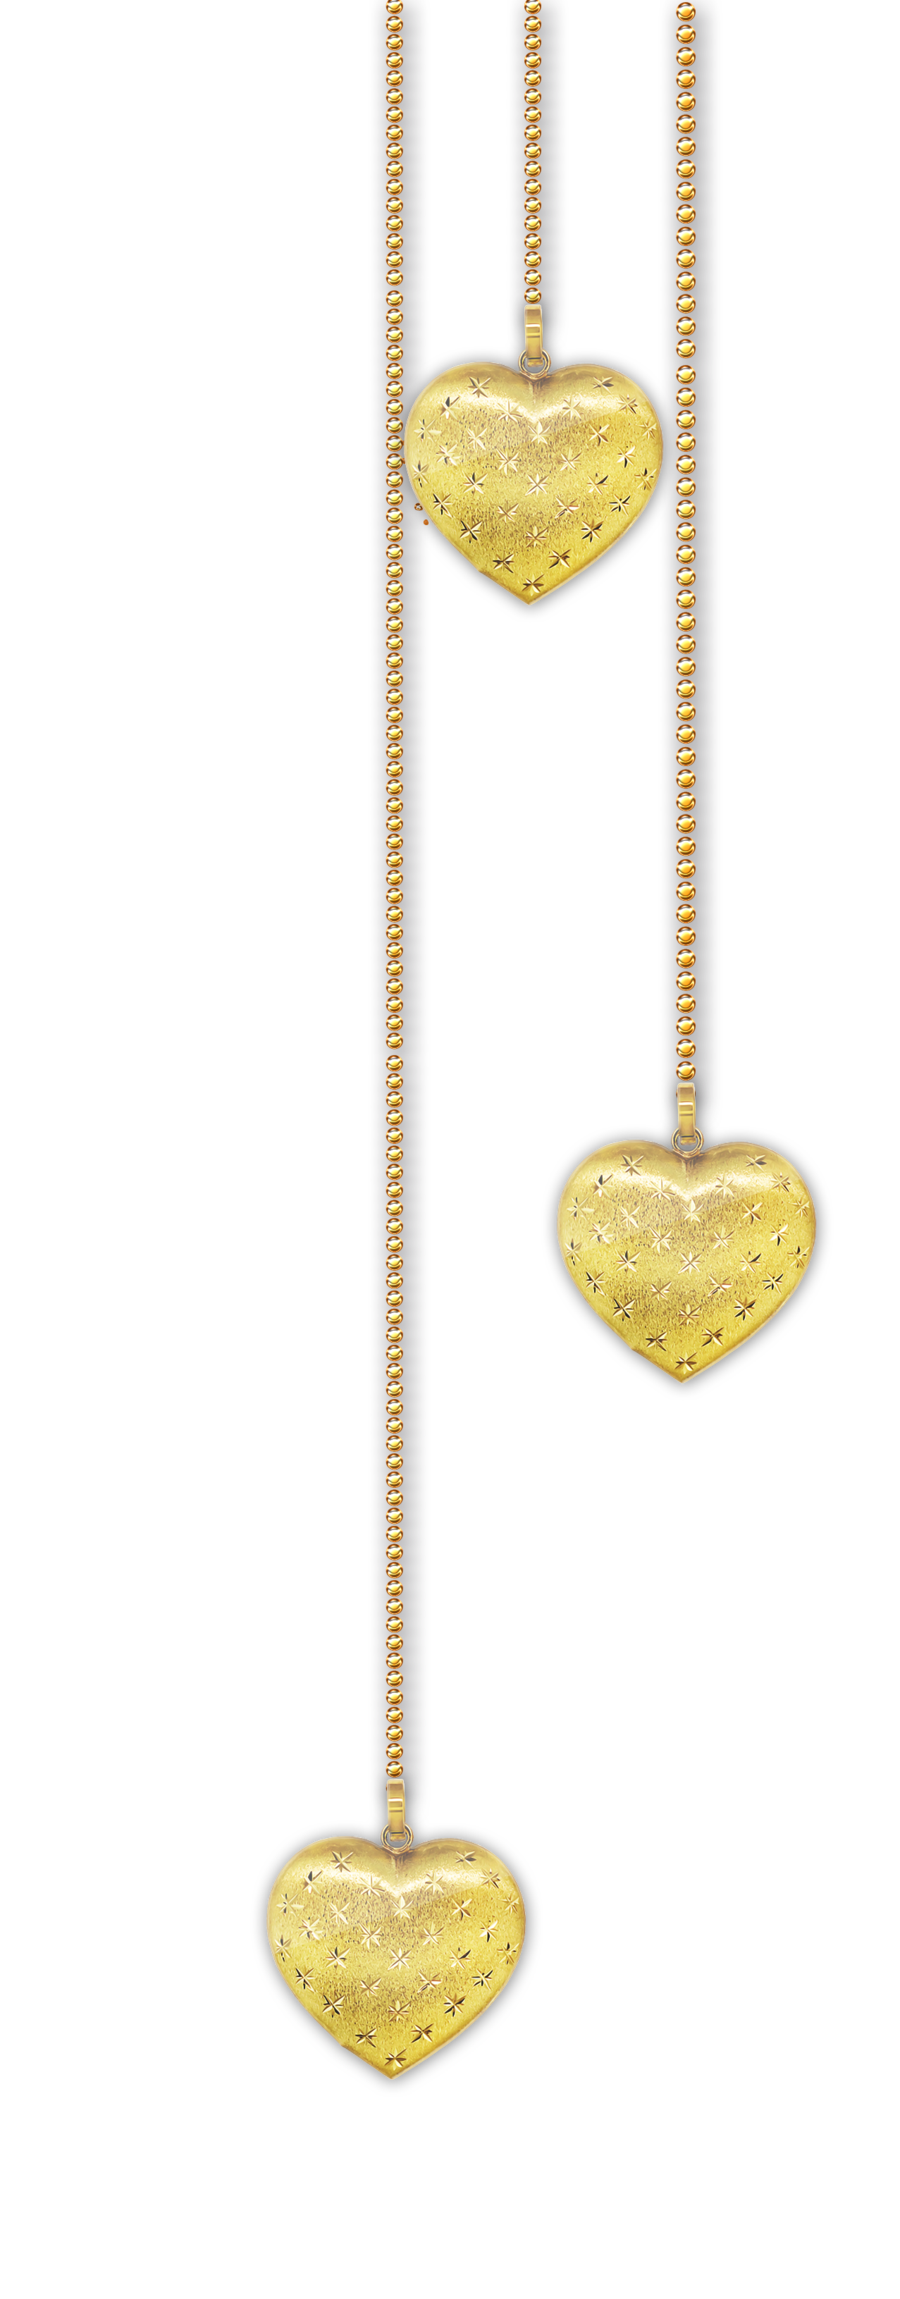 Hearts png by melissa. Garland clipart pendant